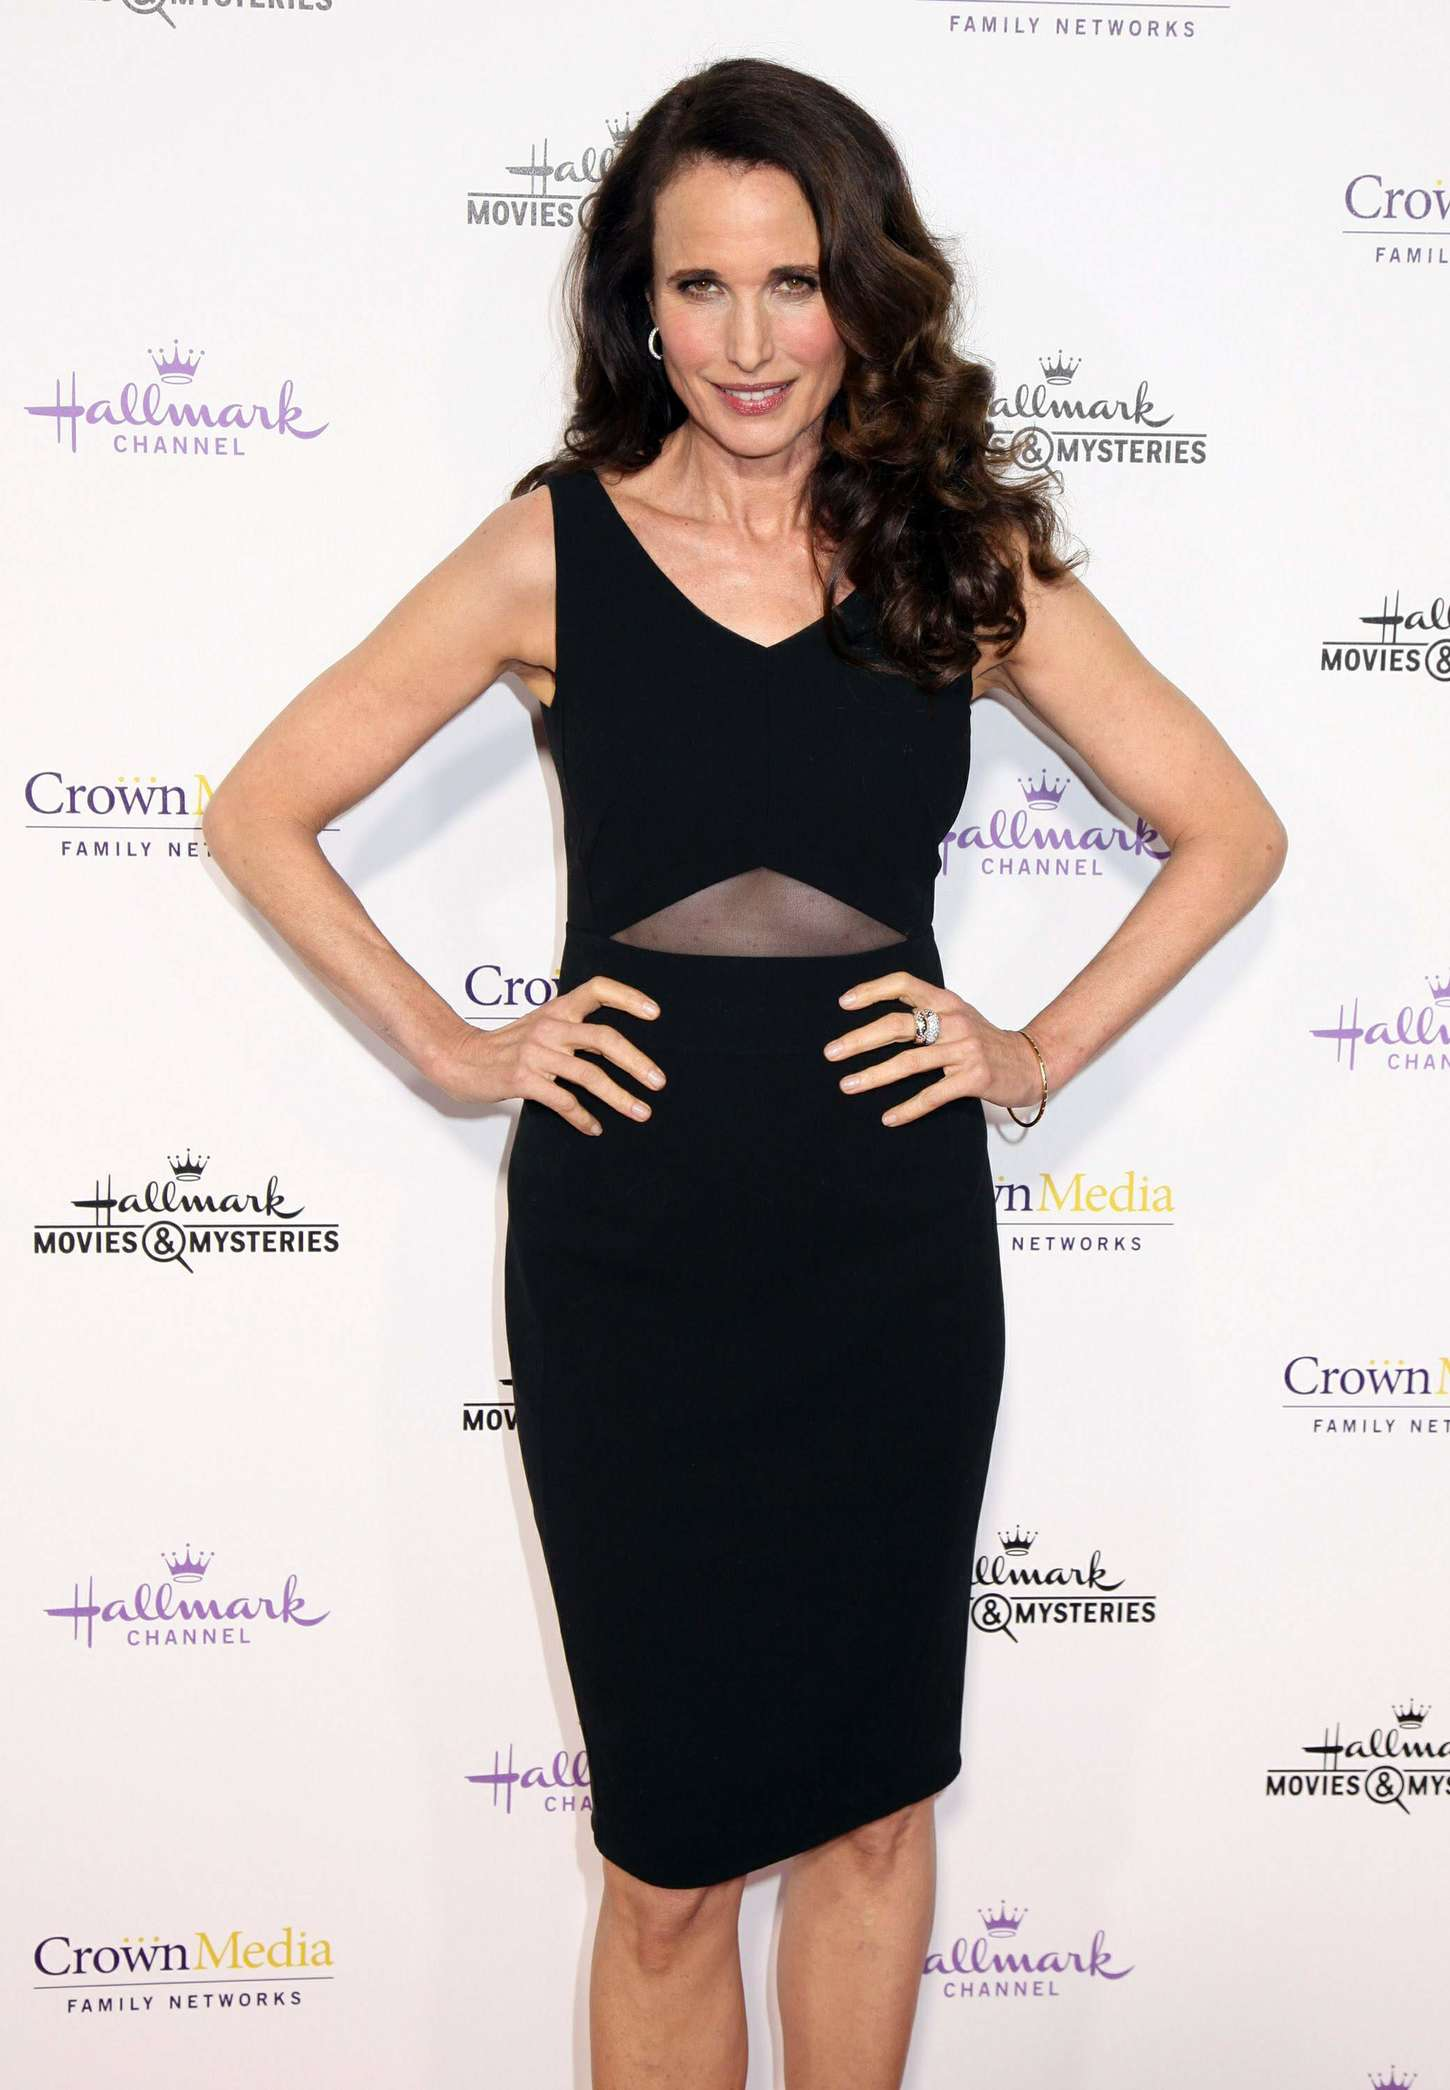 Andie MacDowell Hallmark Channel TCA Press Tour in Pasadena